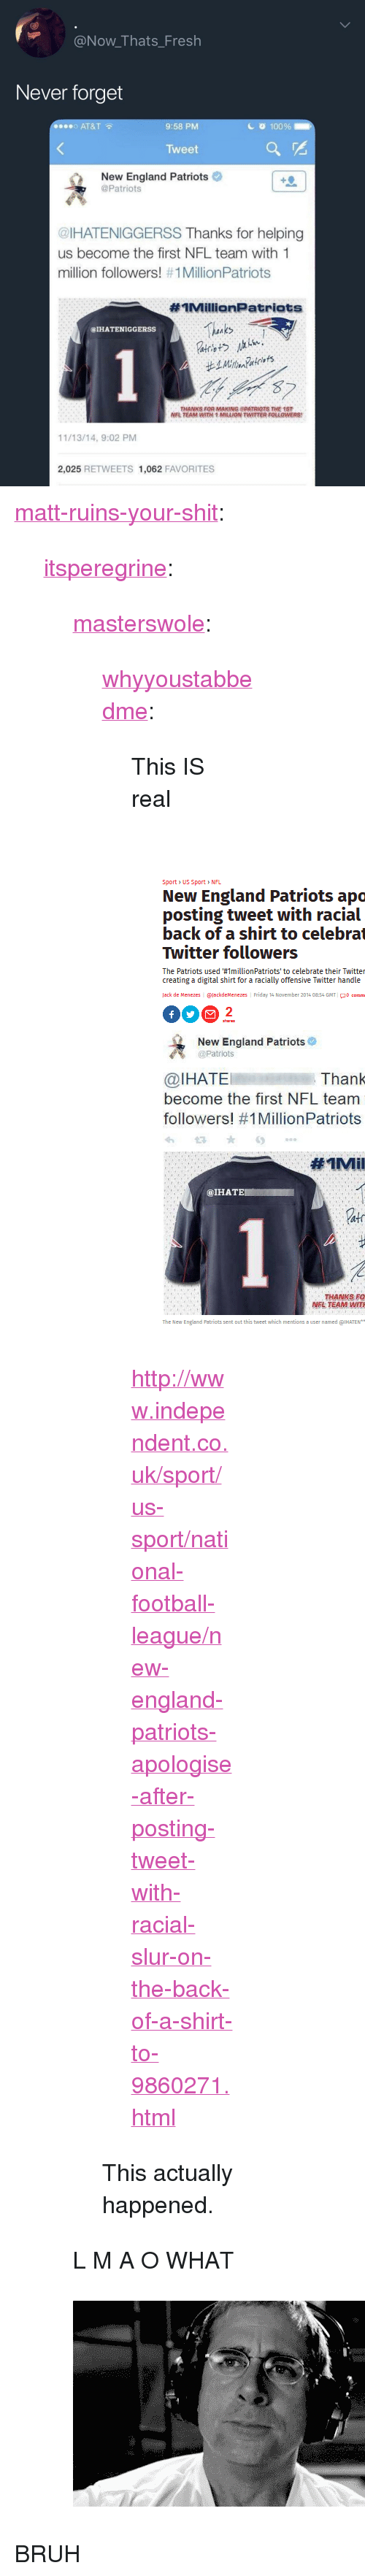 "Anaconda, Bilbo, and Bruh: @Now_Thats_Fresh  Never forget  o AT&T  9:58 PM  c 100%  Tweet  New England Patriots  @Patriots  @IHATENIGGERSS Thanks for helping  us become the first NFL team with 1  million followers! #1 MillionPatriots  #IMillionPatriats  Thinks  @IHATENIGGERSS  THANKS FOR MAKING PATRIOTS THE 1ST  NFL TEAM WITH 1 MILLION TWITTER FOLLOWERS  11/13/14, 9:02 PM  2,025 RETWEETS 1,062 FAVORITES <p><a href=""http://matt-ruins-your-shit.tumblr.com/post/170555202256/itsperegrine-masterswole"" class=""tumblr_blog"">matt-ruins-your-shit</a>:</p>  <blockquote><p><a href=""https://itsperegrine.tumblr.com/post/170554653238/masterswole-whyyoustabbedme-this-is-real"" class=""tumblr_blog"">itsperegrine</a>:</p> <blockquote> <p><a href=""https://masterswole.tumblr.com/post/170532497935/whyyoustabbedme-this-is-real"" class=""tumblr_blog"">masterswole</a>:</p> <blockquote> <p><a href=""https://whyyoustabbedme.tumblr.com/post/170532301662/this-is-real"" class=""tumblr_blog"">whyyoustabbedme</a>:</p>  <blockquote> <p style="""">This IS real</p> <p style=""""><br/></p> <figure class=""tmblr-full"" data-orig-height=""630"" data-orig-width=""468""><img src=""https://78.media.tumblr.com/fd6a077bdf7773c58b1c44b6d9e5bb80/tumblr_inline_p3oehiLHYk1vrw6x9_540.png"" data-orig-height=""630"" data-orig-width=""468""/></figure><p style=""""><a href=""http://www.independent.co.uk/sport/us-sport/national-football-league/new-england-patriots-apologise-after-posting-tweet-with-racial-slur-on-the-back-of-a-shirt-to-9860271.html"">http://www.independent.co.uk/sport/us-sport/national-football-league/new-england-patriots-apologise-after-posting-tweet-with-racial-slur-on-the-back-of-a-shirt-to-9860271.html</a><br/></p> </blockquote>  <p>This actually happened.</p> </blockquote>  <p>L M A O WHAT</p> </blockquote> <figure class=""tmblr-full"" data-orig-height=""282"" data-orig-width=""500""><img src=""https://78.media.tumblr.com/16d1248eaa8696569f17f6b2d888894d/tumblr_inline_p3pf8sFcM21si8t7m_540.gif"" data-orig-height=""282"" data-orig-width=""500""/></figure></blockquote>  <p>BRUH</p>"